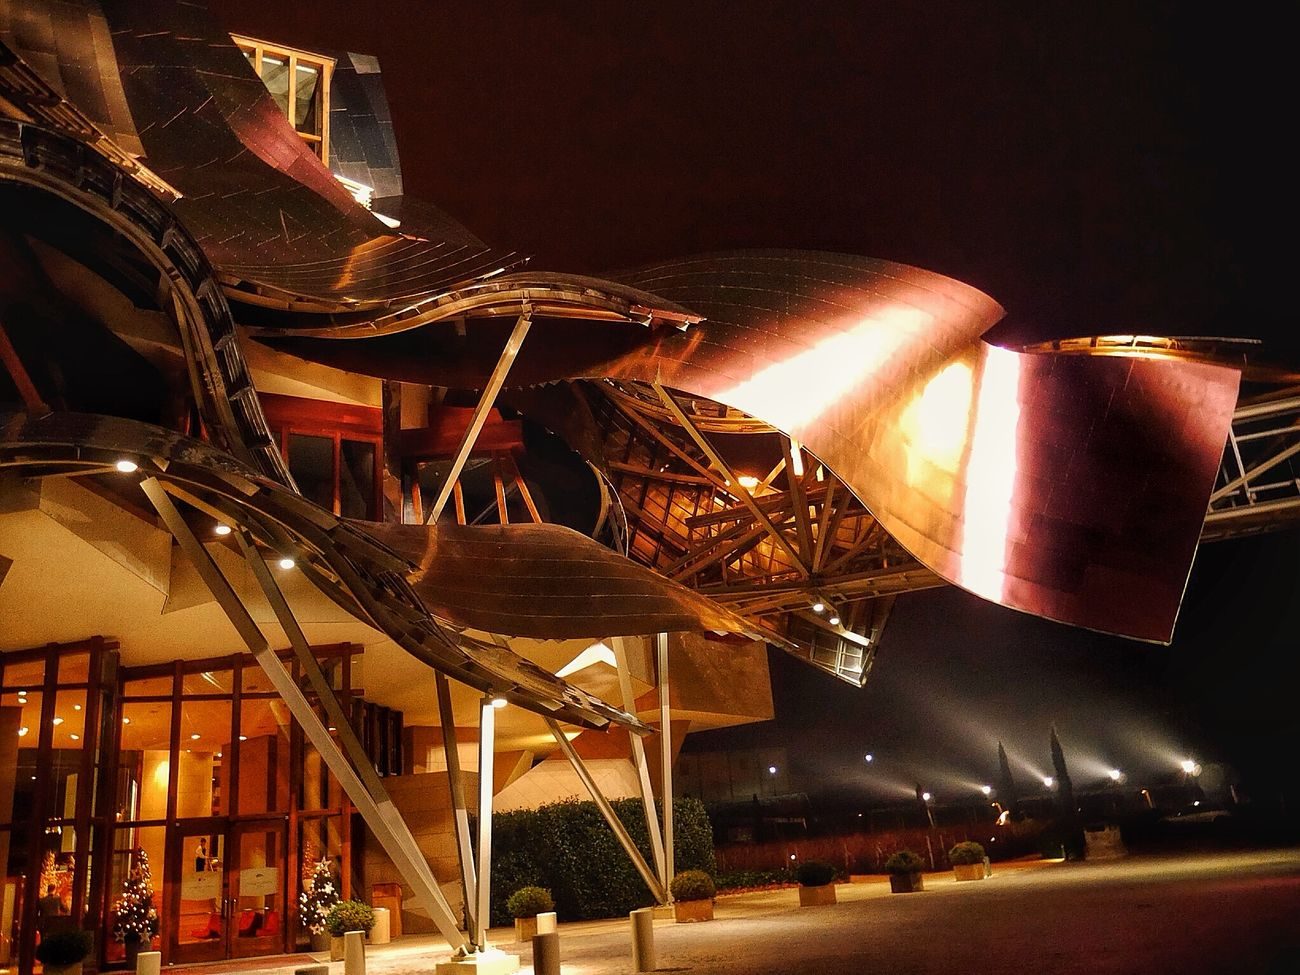 The Architect - 2015 EyeEm Awards Marques De Riscal Elciego La Rioja Enjoying Life Bodegas Night Lights Frank Gehry